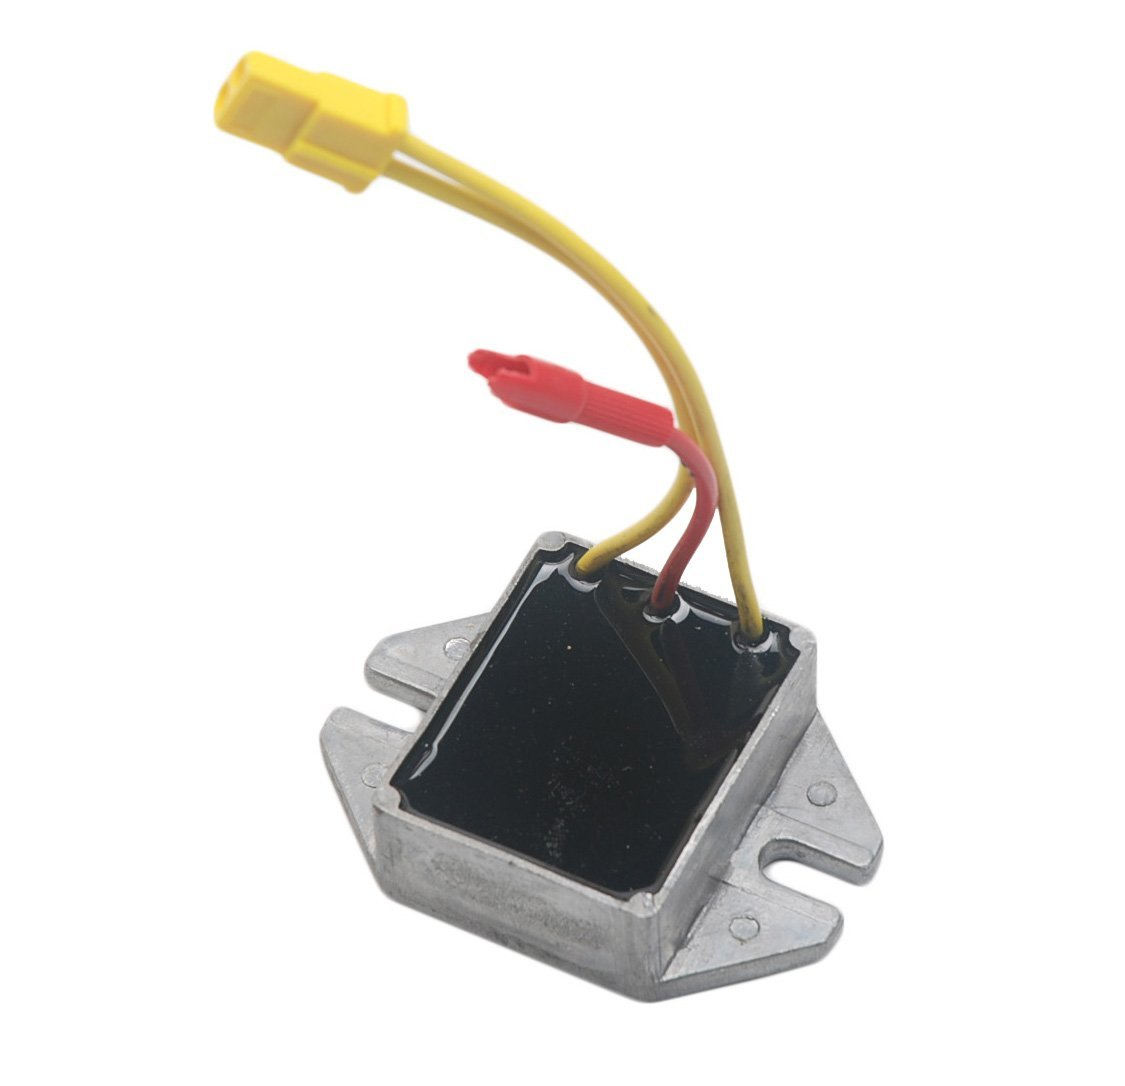 HIFROM(TM) Replace Voltage Regulator For Briggs & Stratton 394890 393374 691185 797375 797182 845907